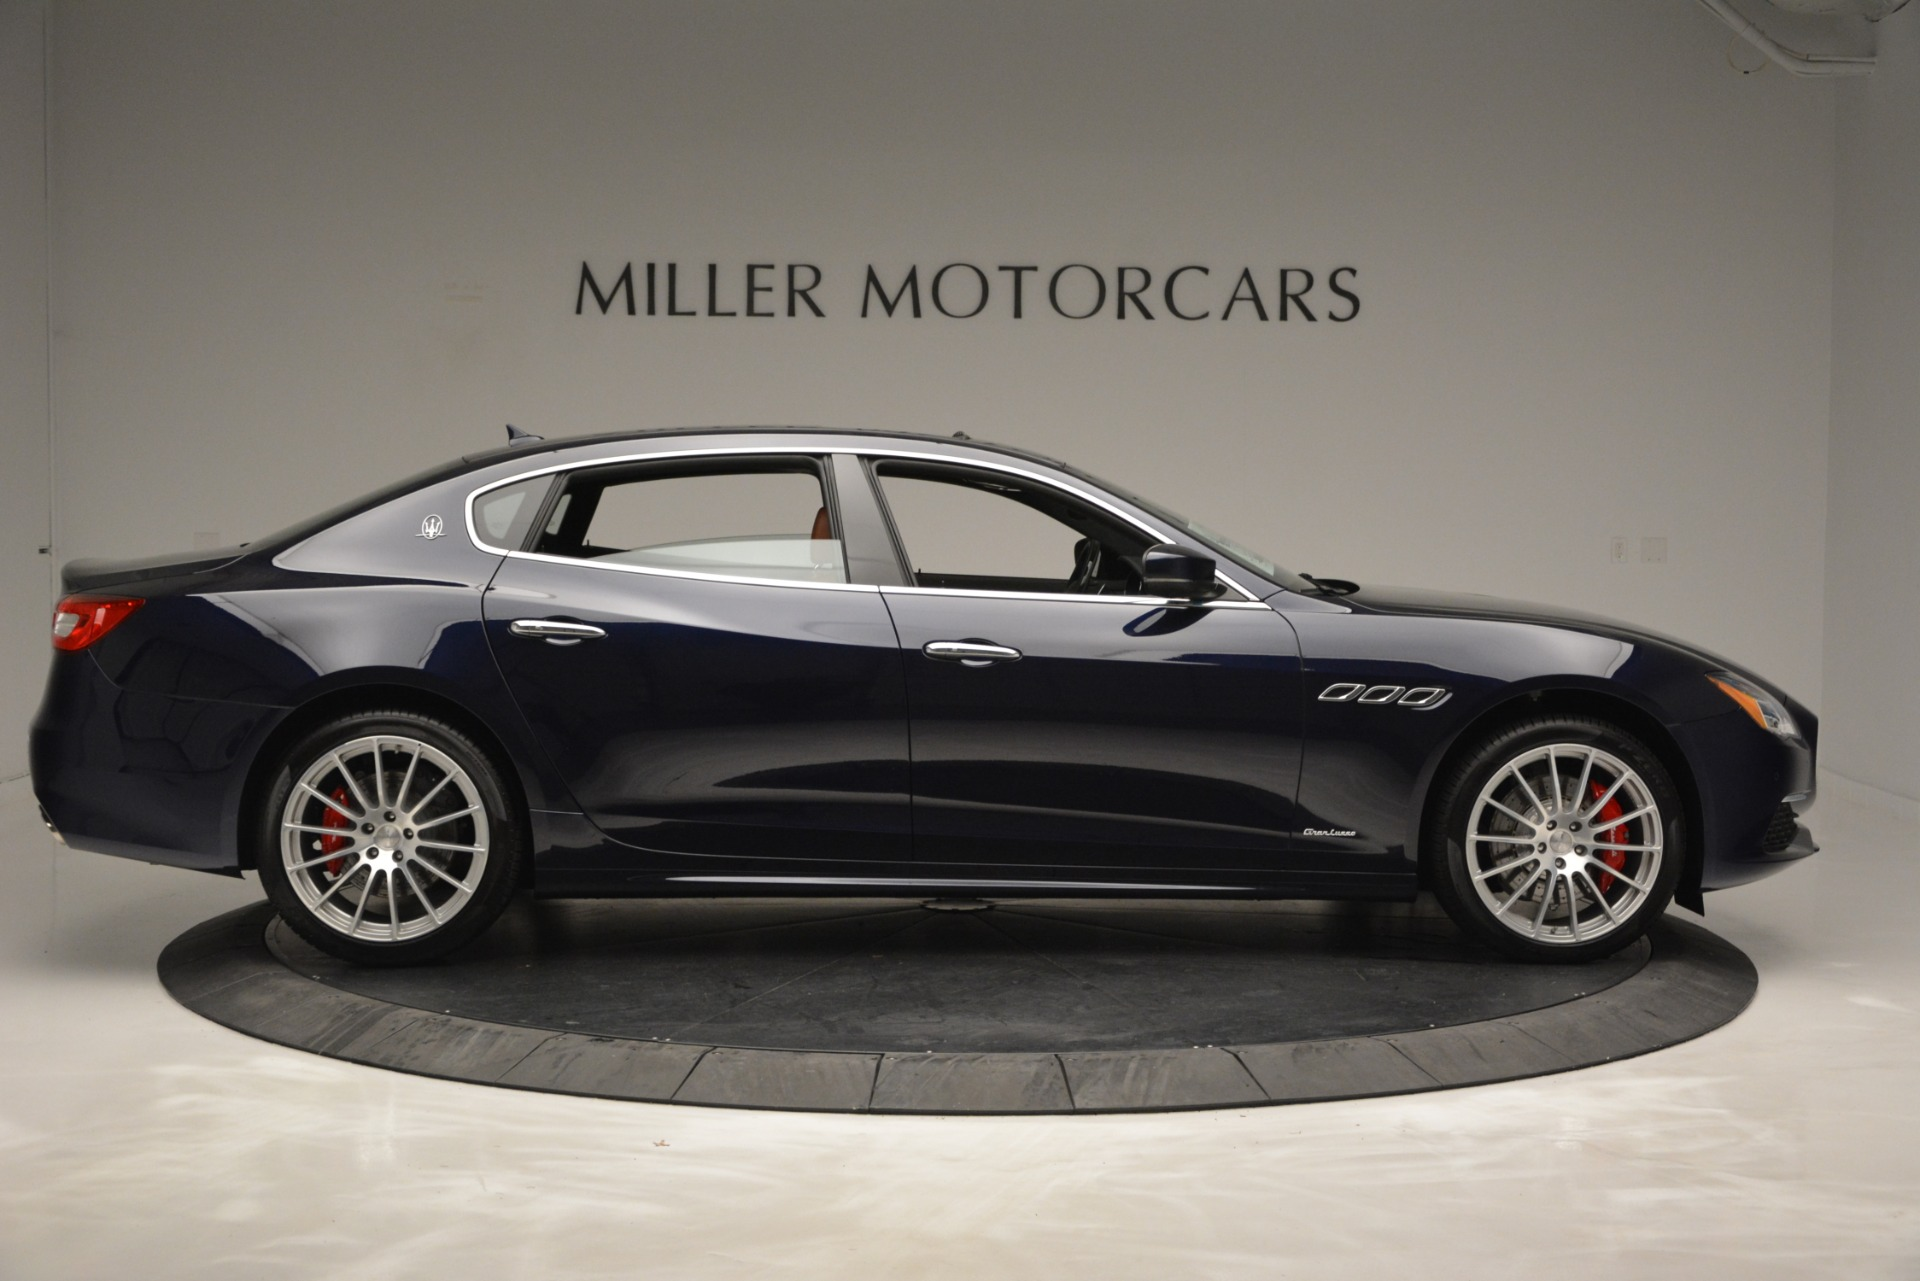 New 2019 Maserati Quattroporte S Q4 GranLusso For Sale In Westport, CT 2620_p9